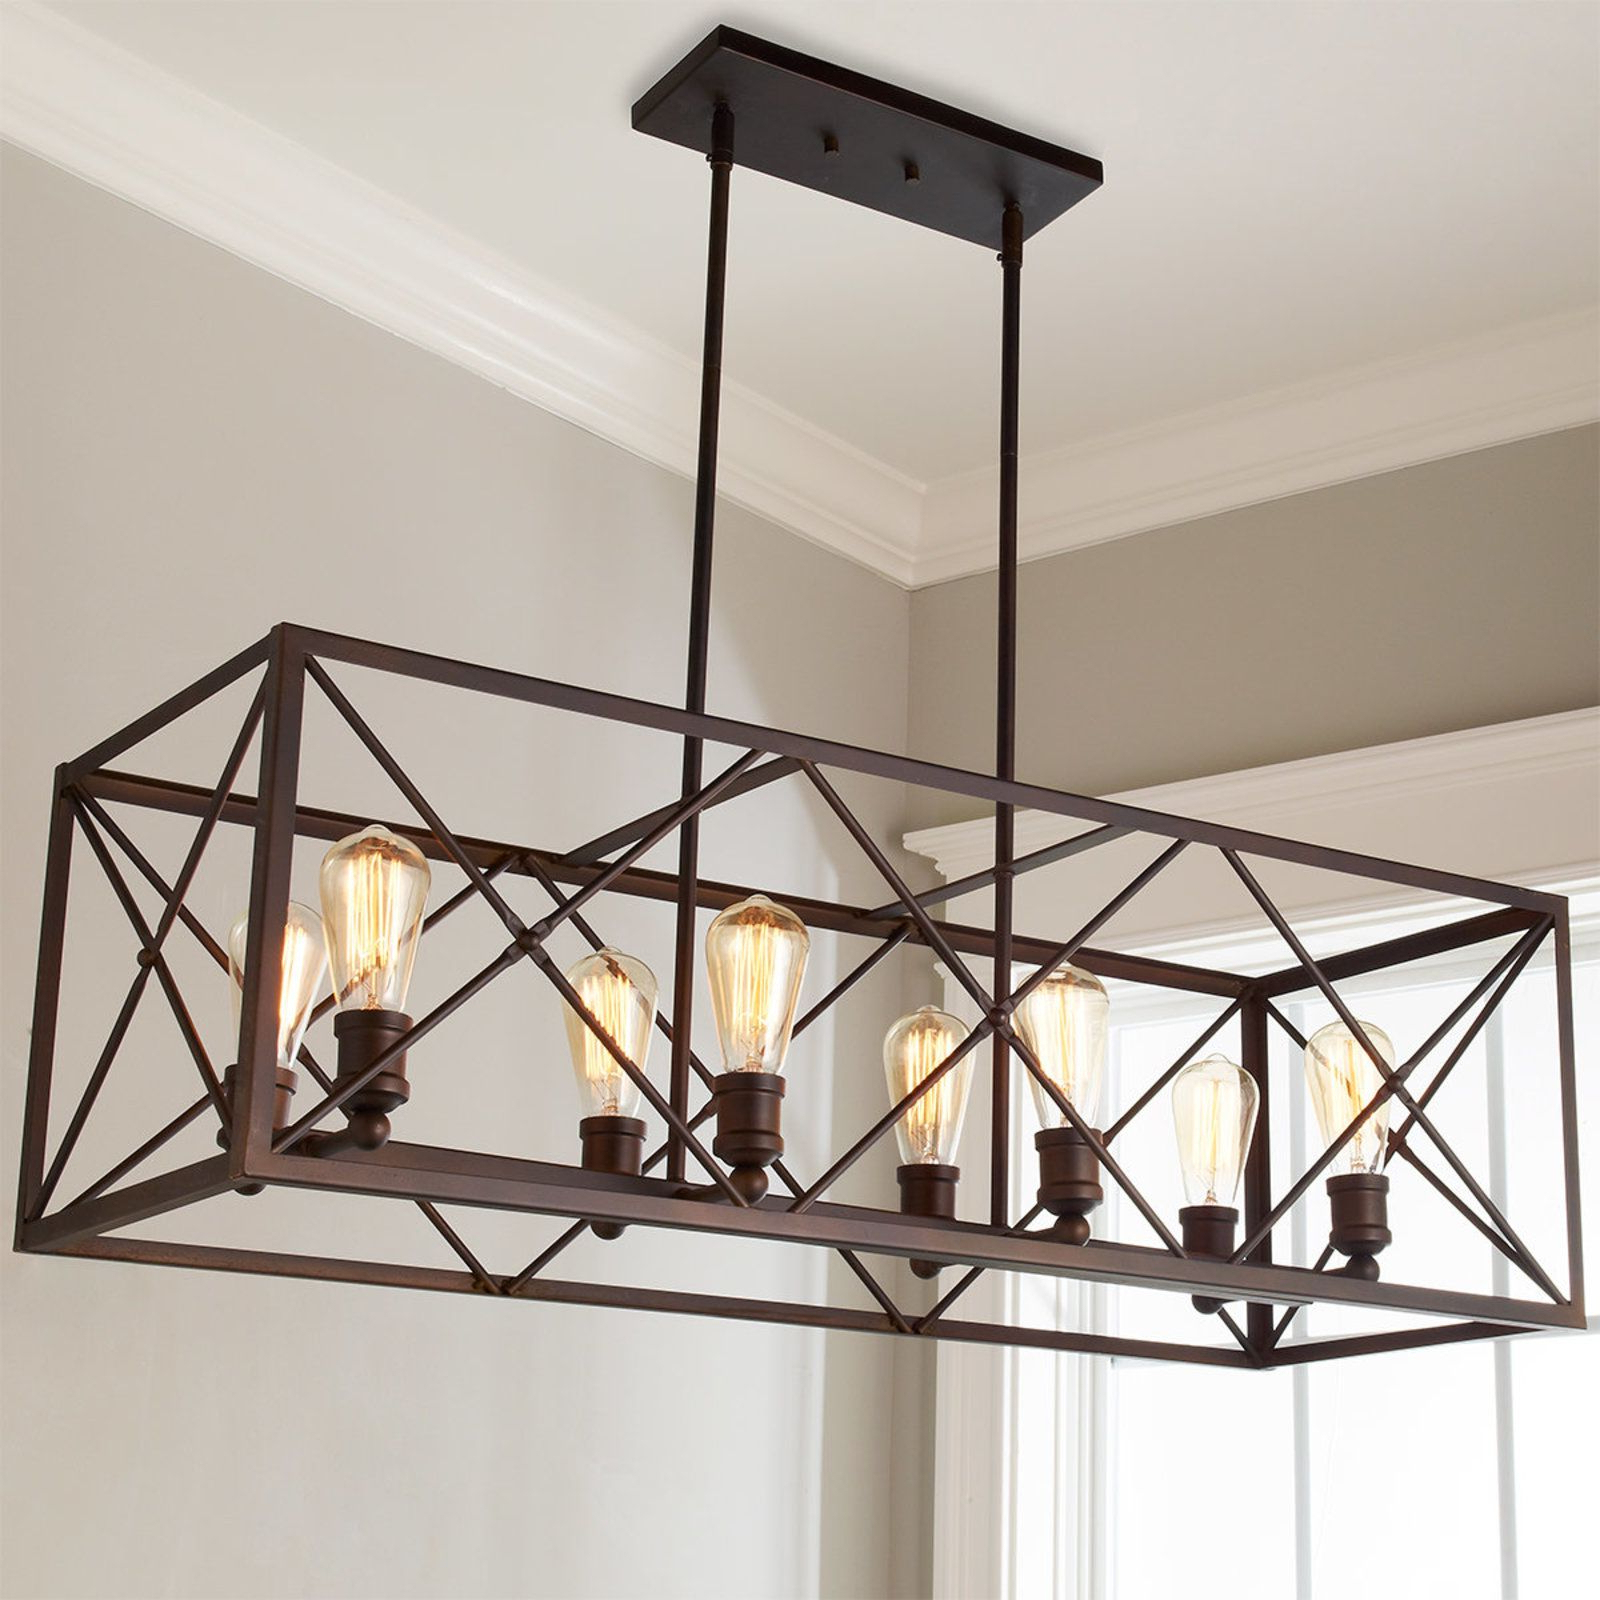 Ellenton 4 Light Rectangle Chandeliers With Well Known Industrial Cross Framed Box Island Chandelier (Gallery 10 of 25)